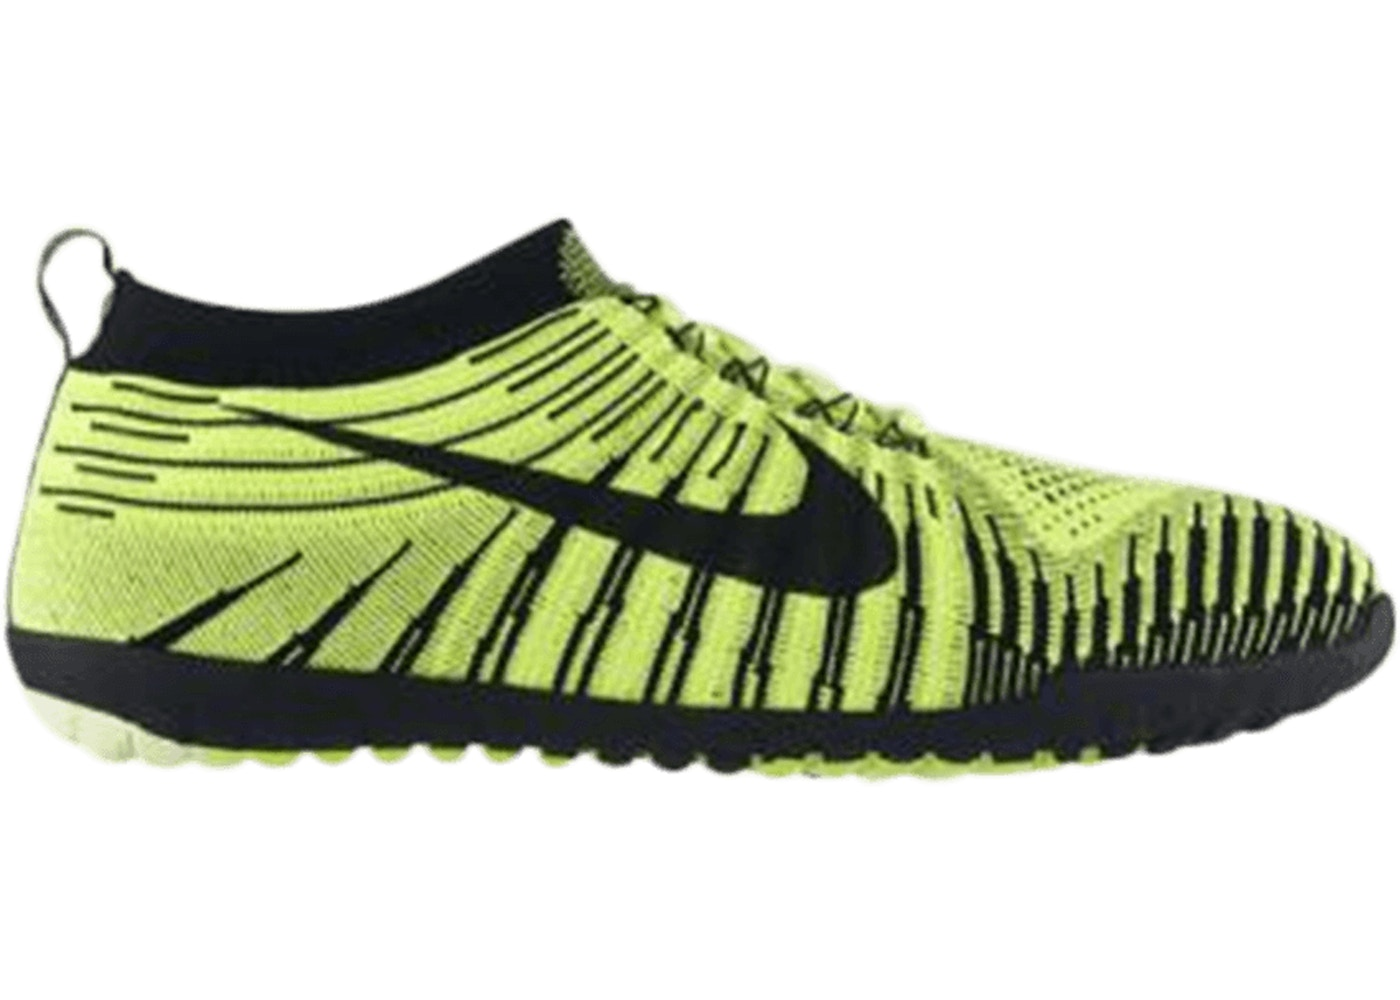 6b600d9a52813 Nike Free Hyperfeel Run Black White Volt - 596249-701